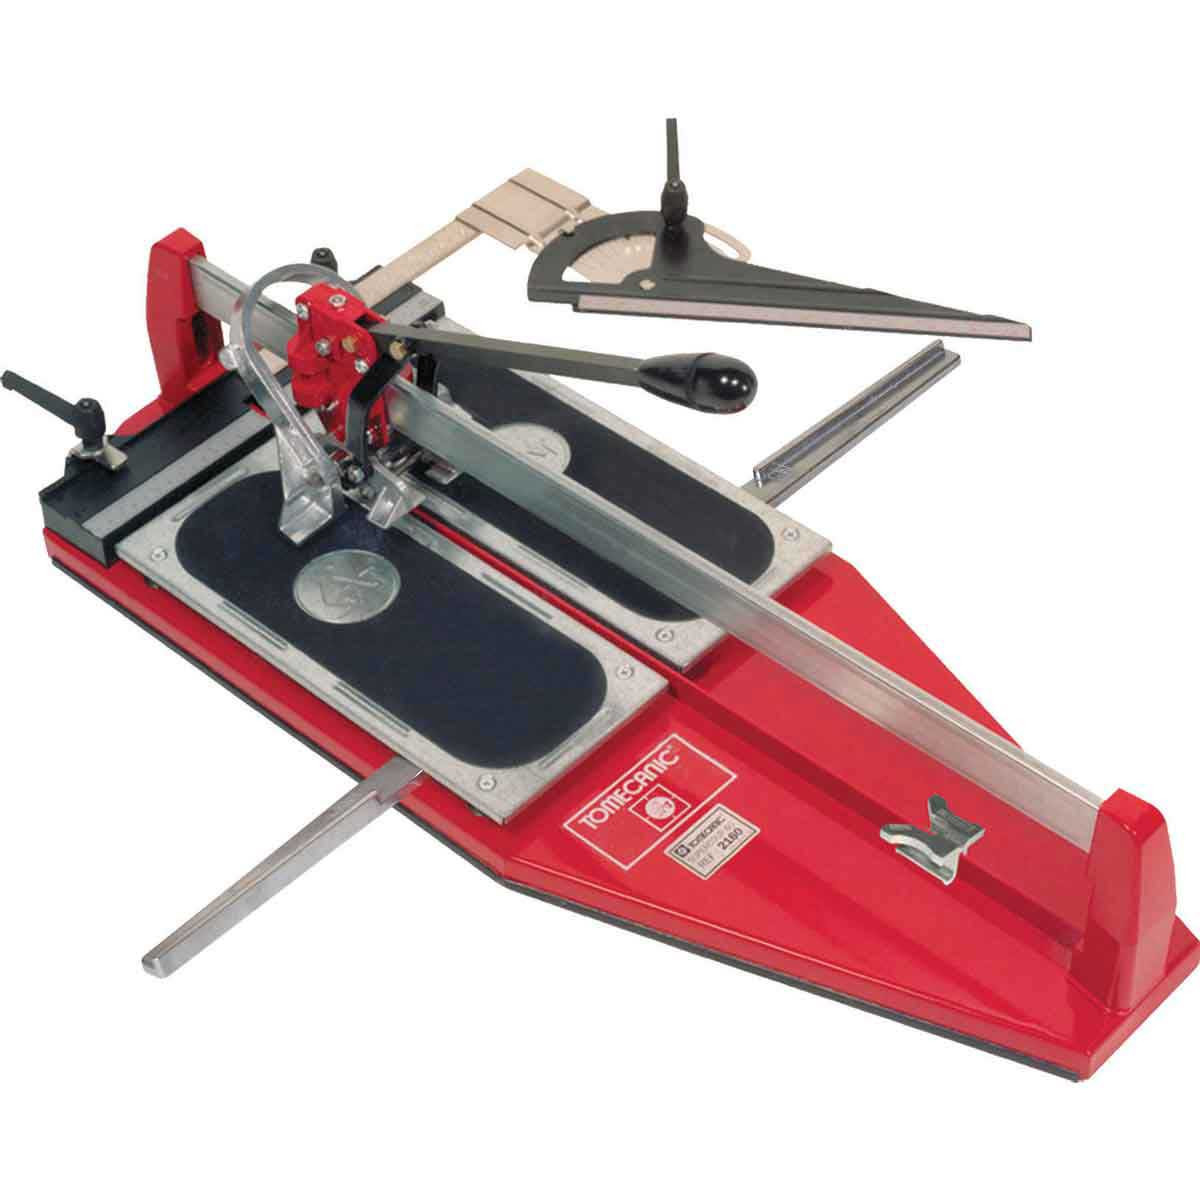 Tomecanic supercut 2160 tile cutter